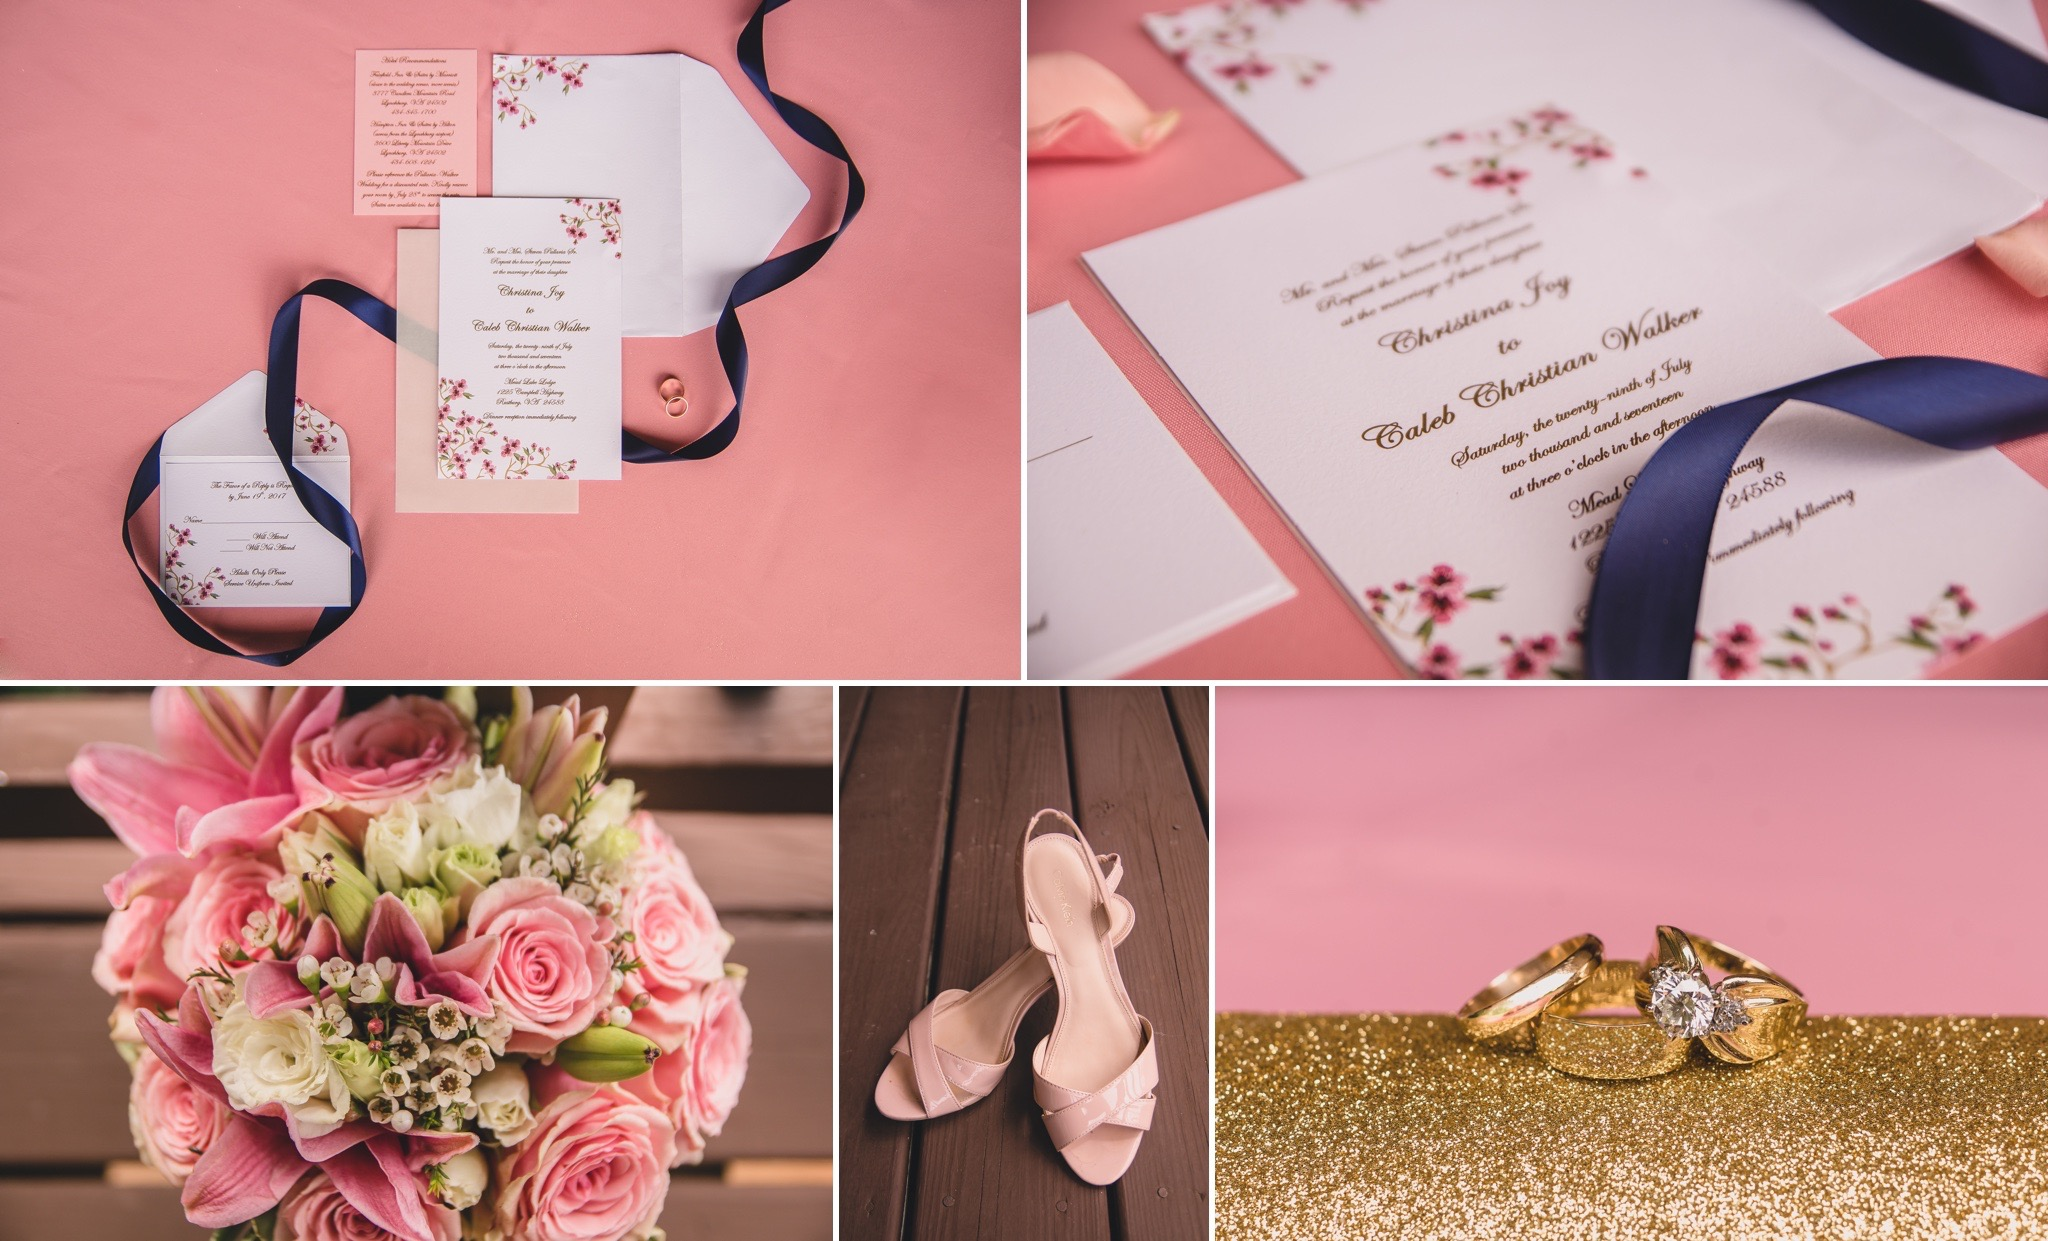 military wedding in blush pink and navy at mead lake lodge rustburg virginia by jonathan hannah photography